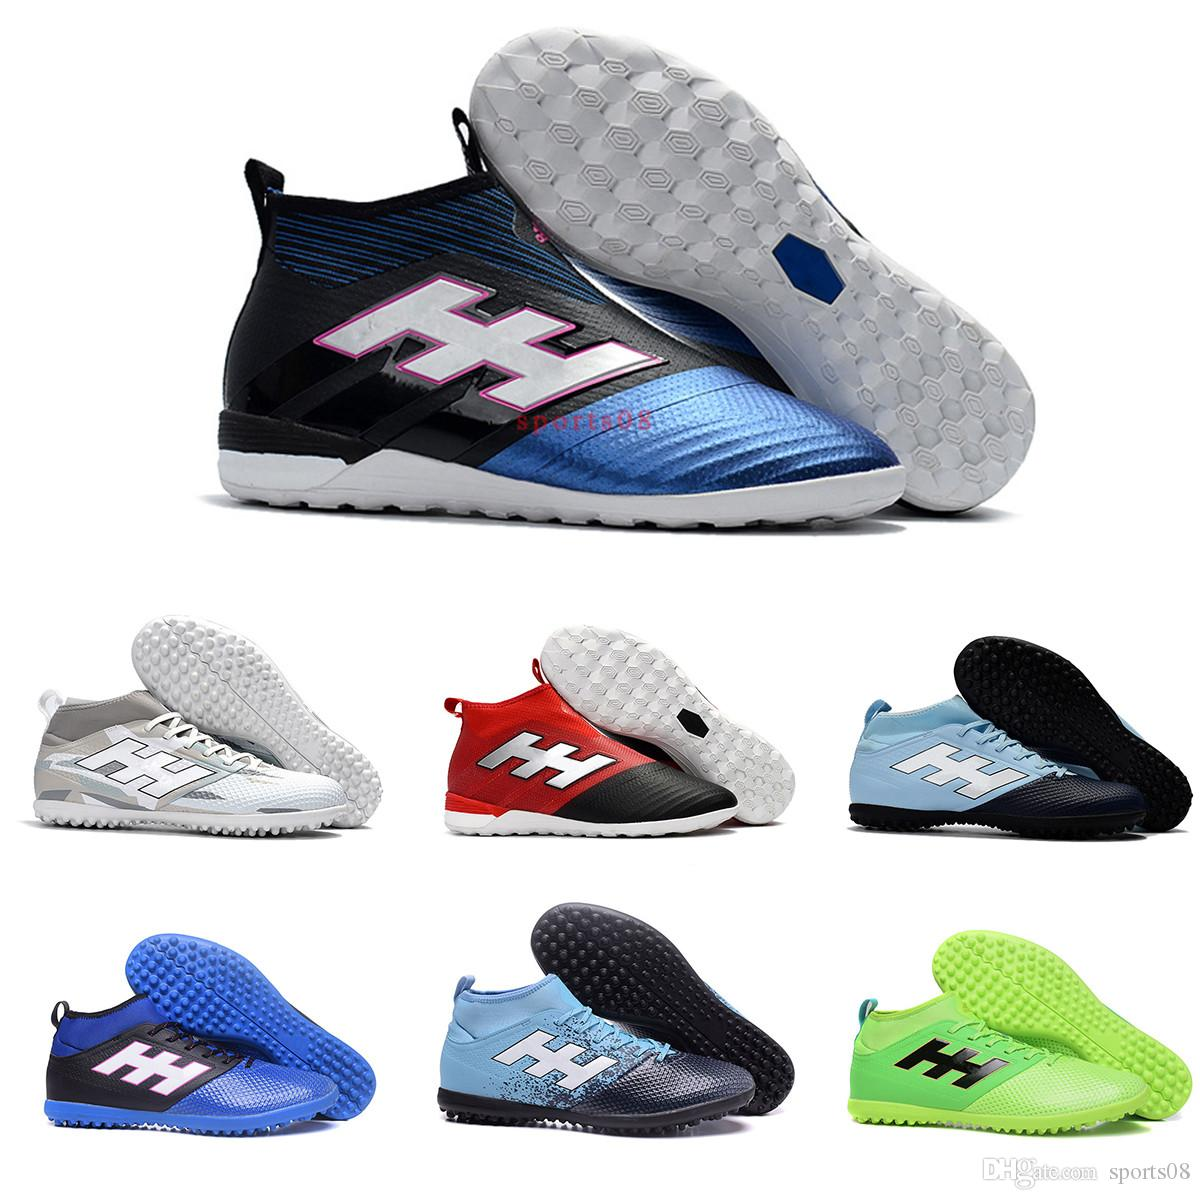 buy popular db256 a44e4 New Football Boots ACE Tango 17.3 Primemesh IN IC TF Indoor High Ankle  Soccer Shoes 17 Purecontrol Pure Control Mens Women Soccer Cleats